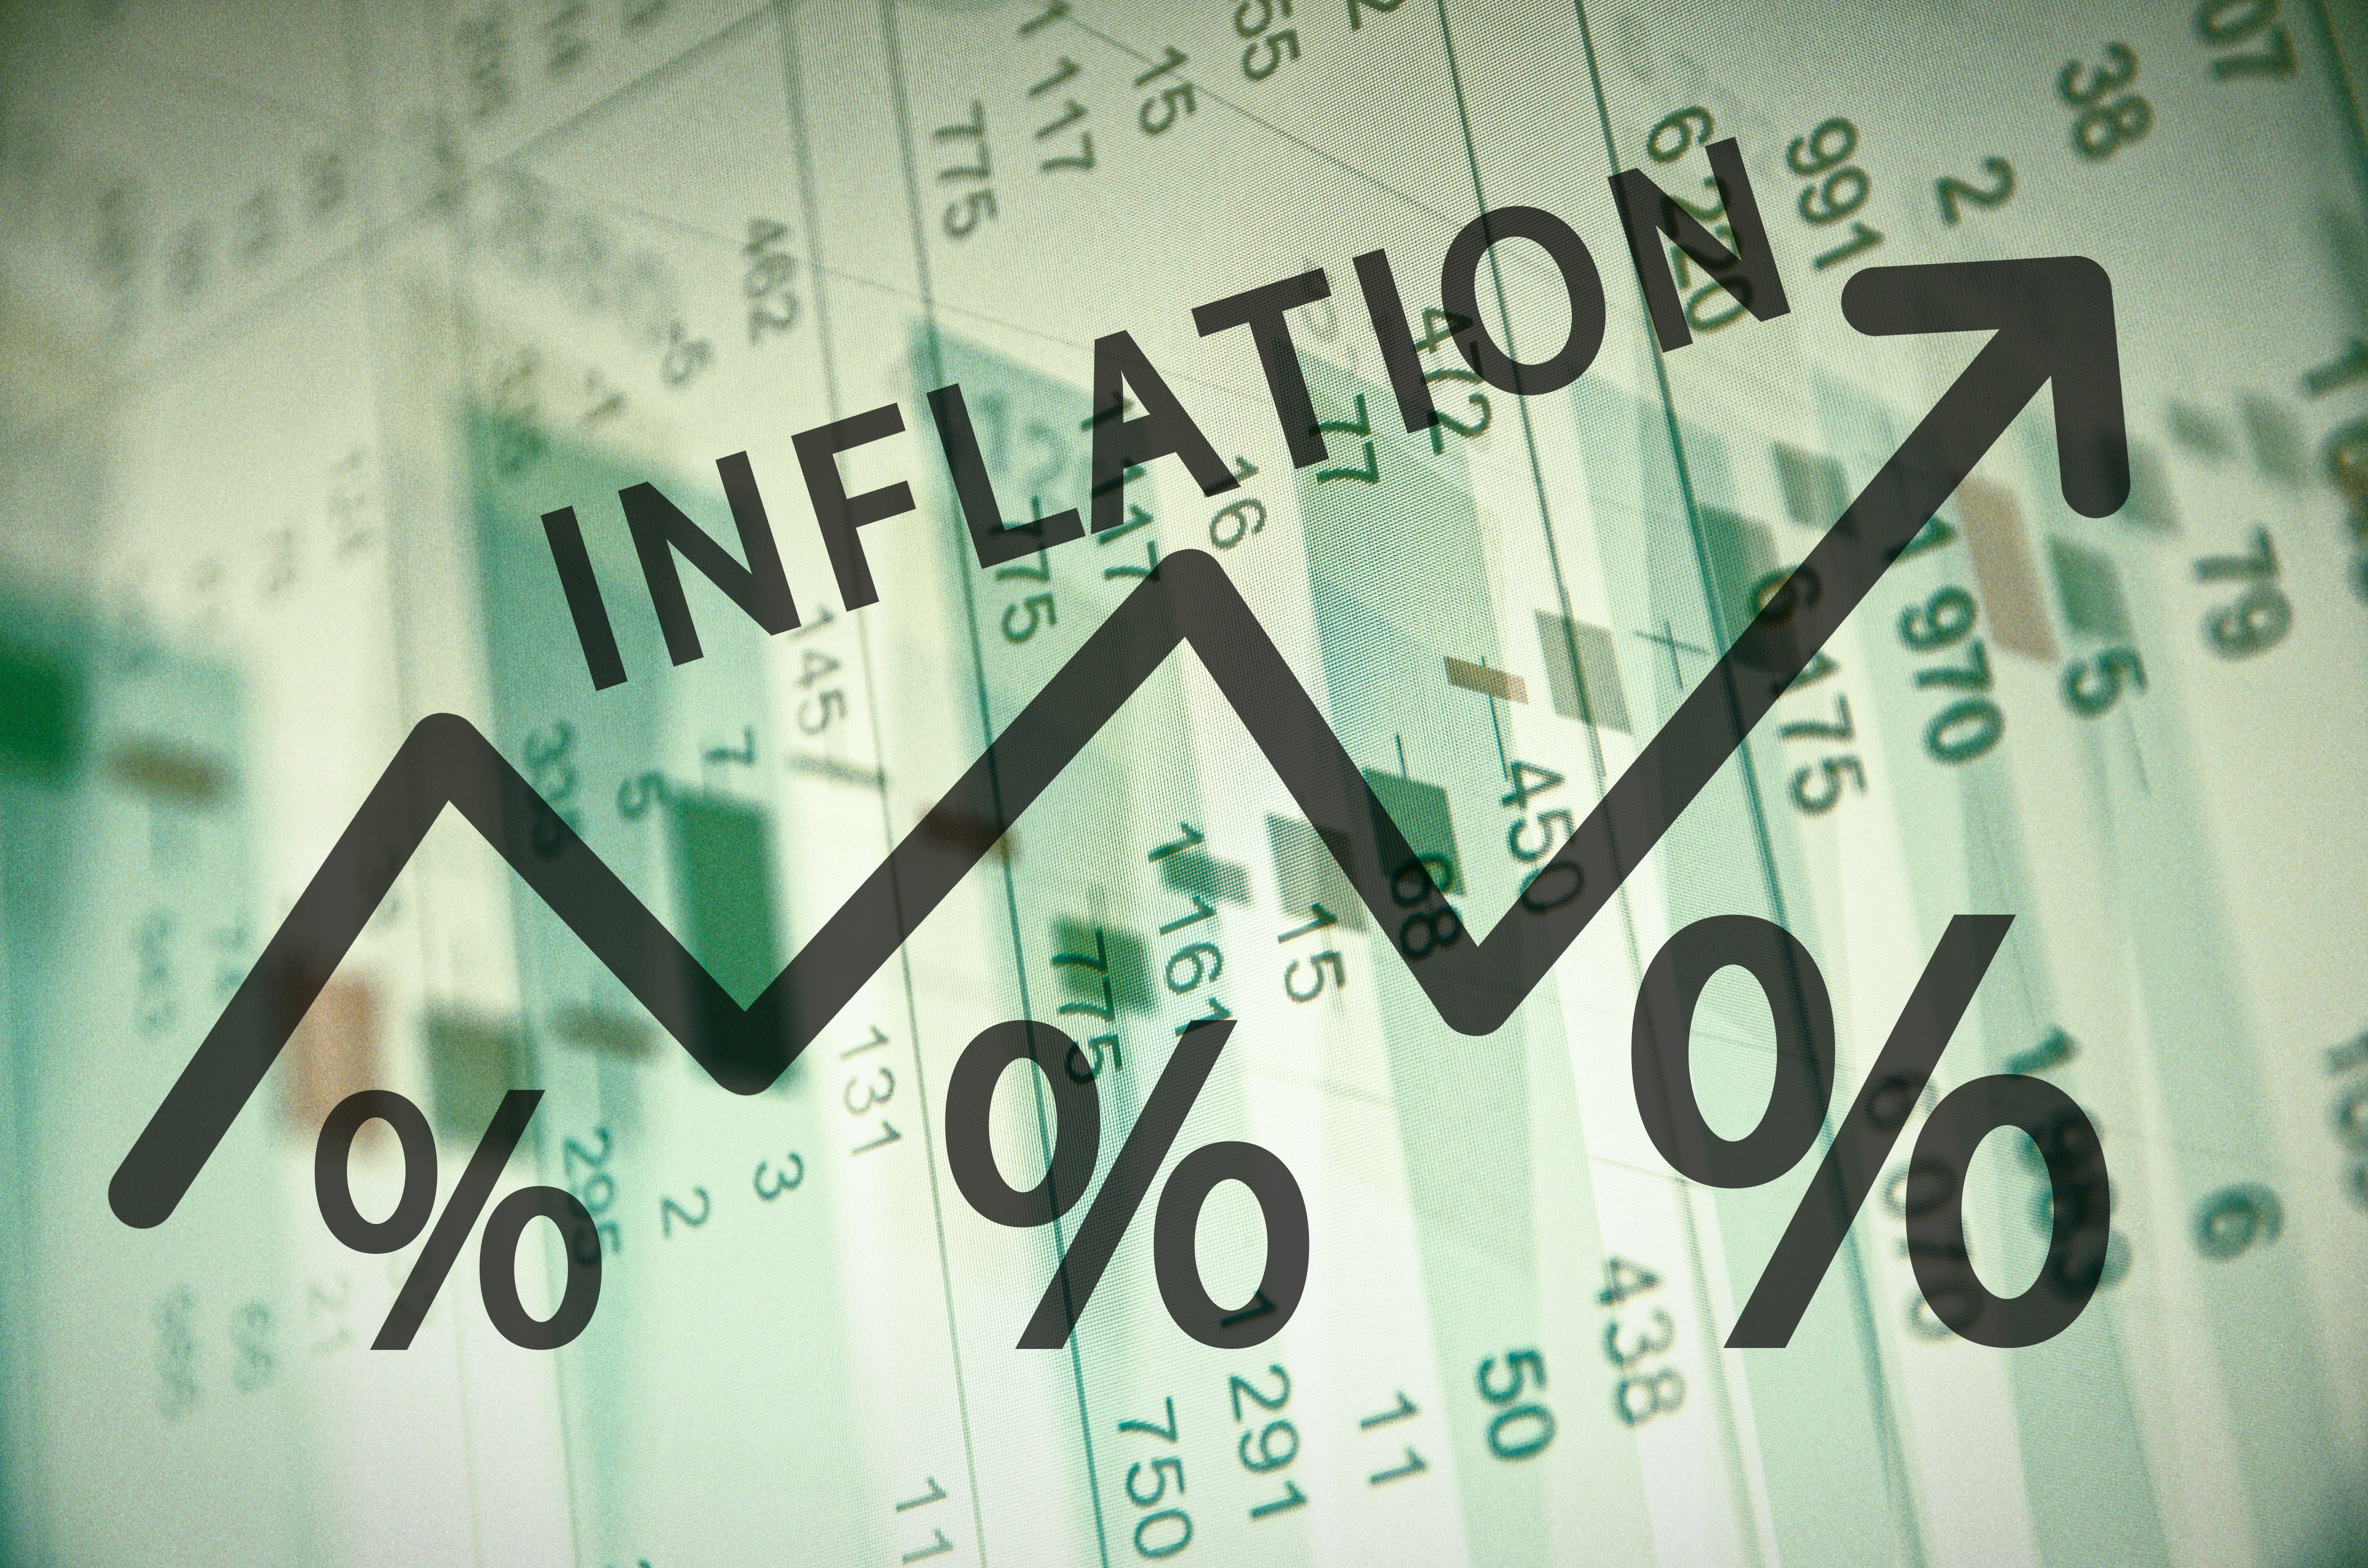 A certain amount of inflation is necessary to nurture economic growth by promoting spending rather than saving.